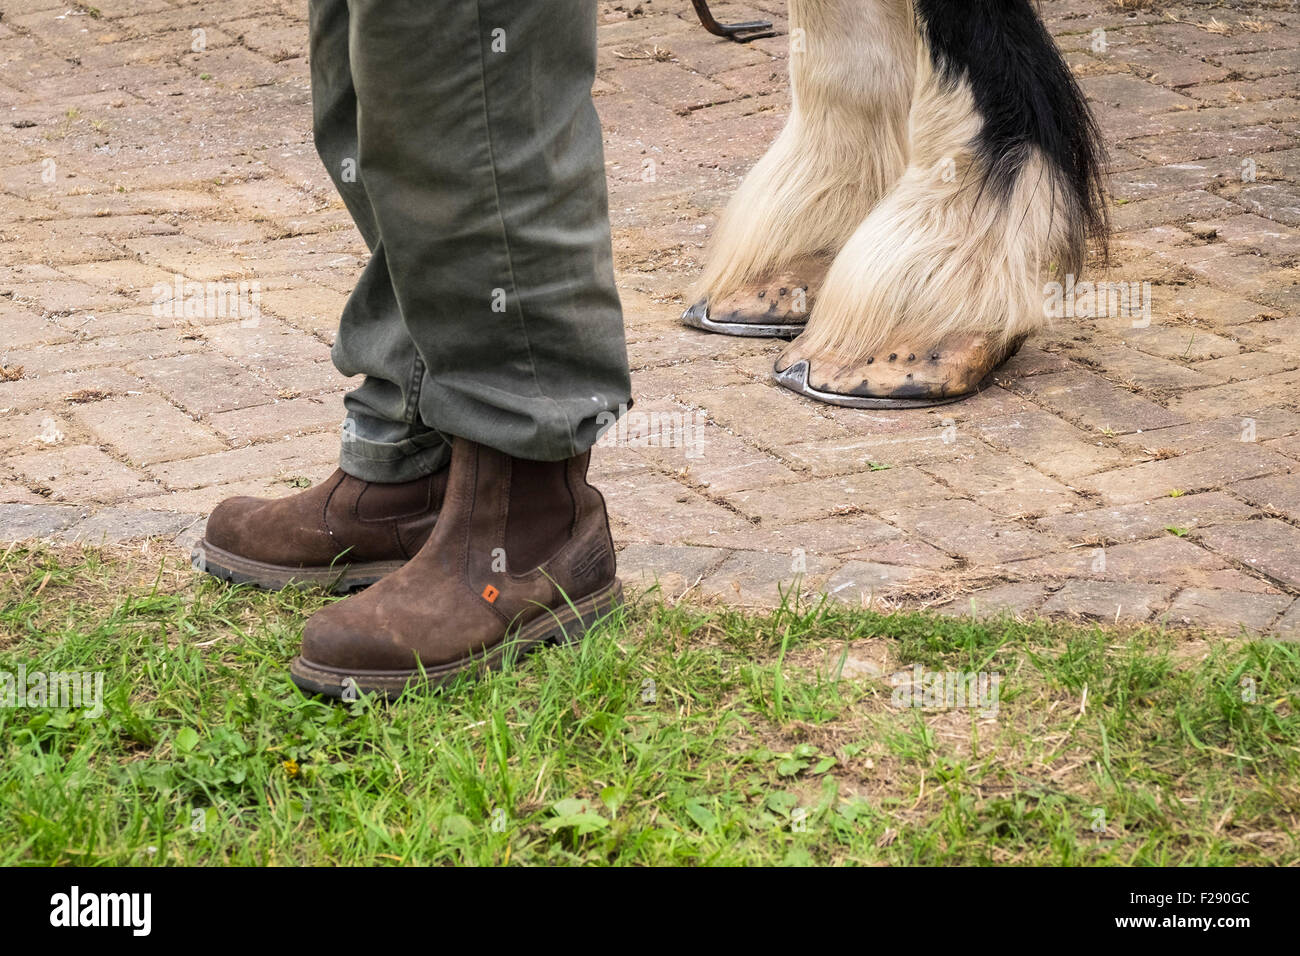 A man standing next to a Shire Horse at the Essex Country Show, Barleylands, Essex. - Stock Image